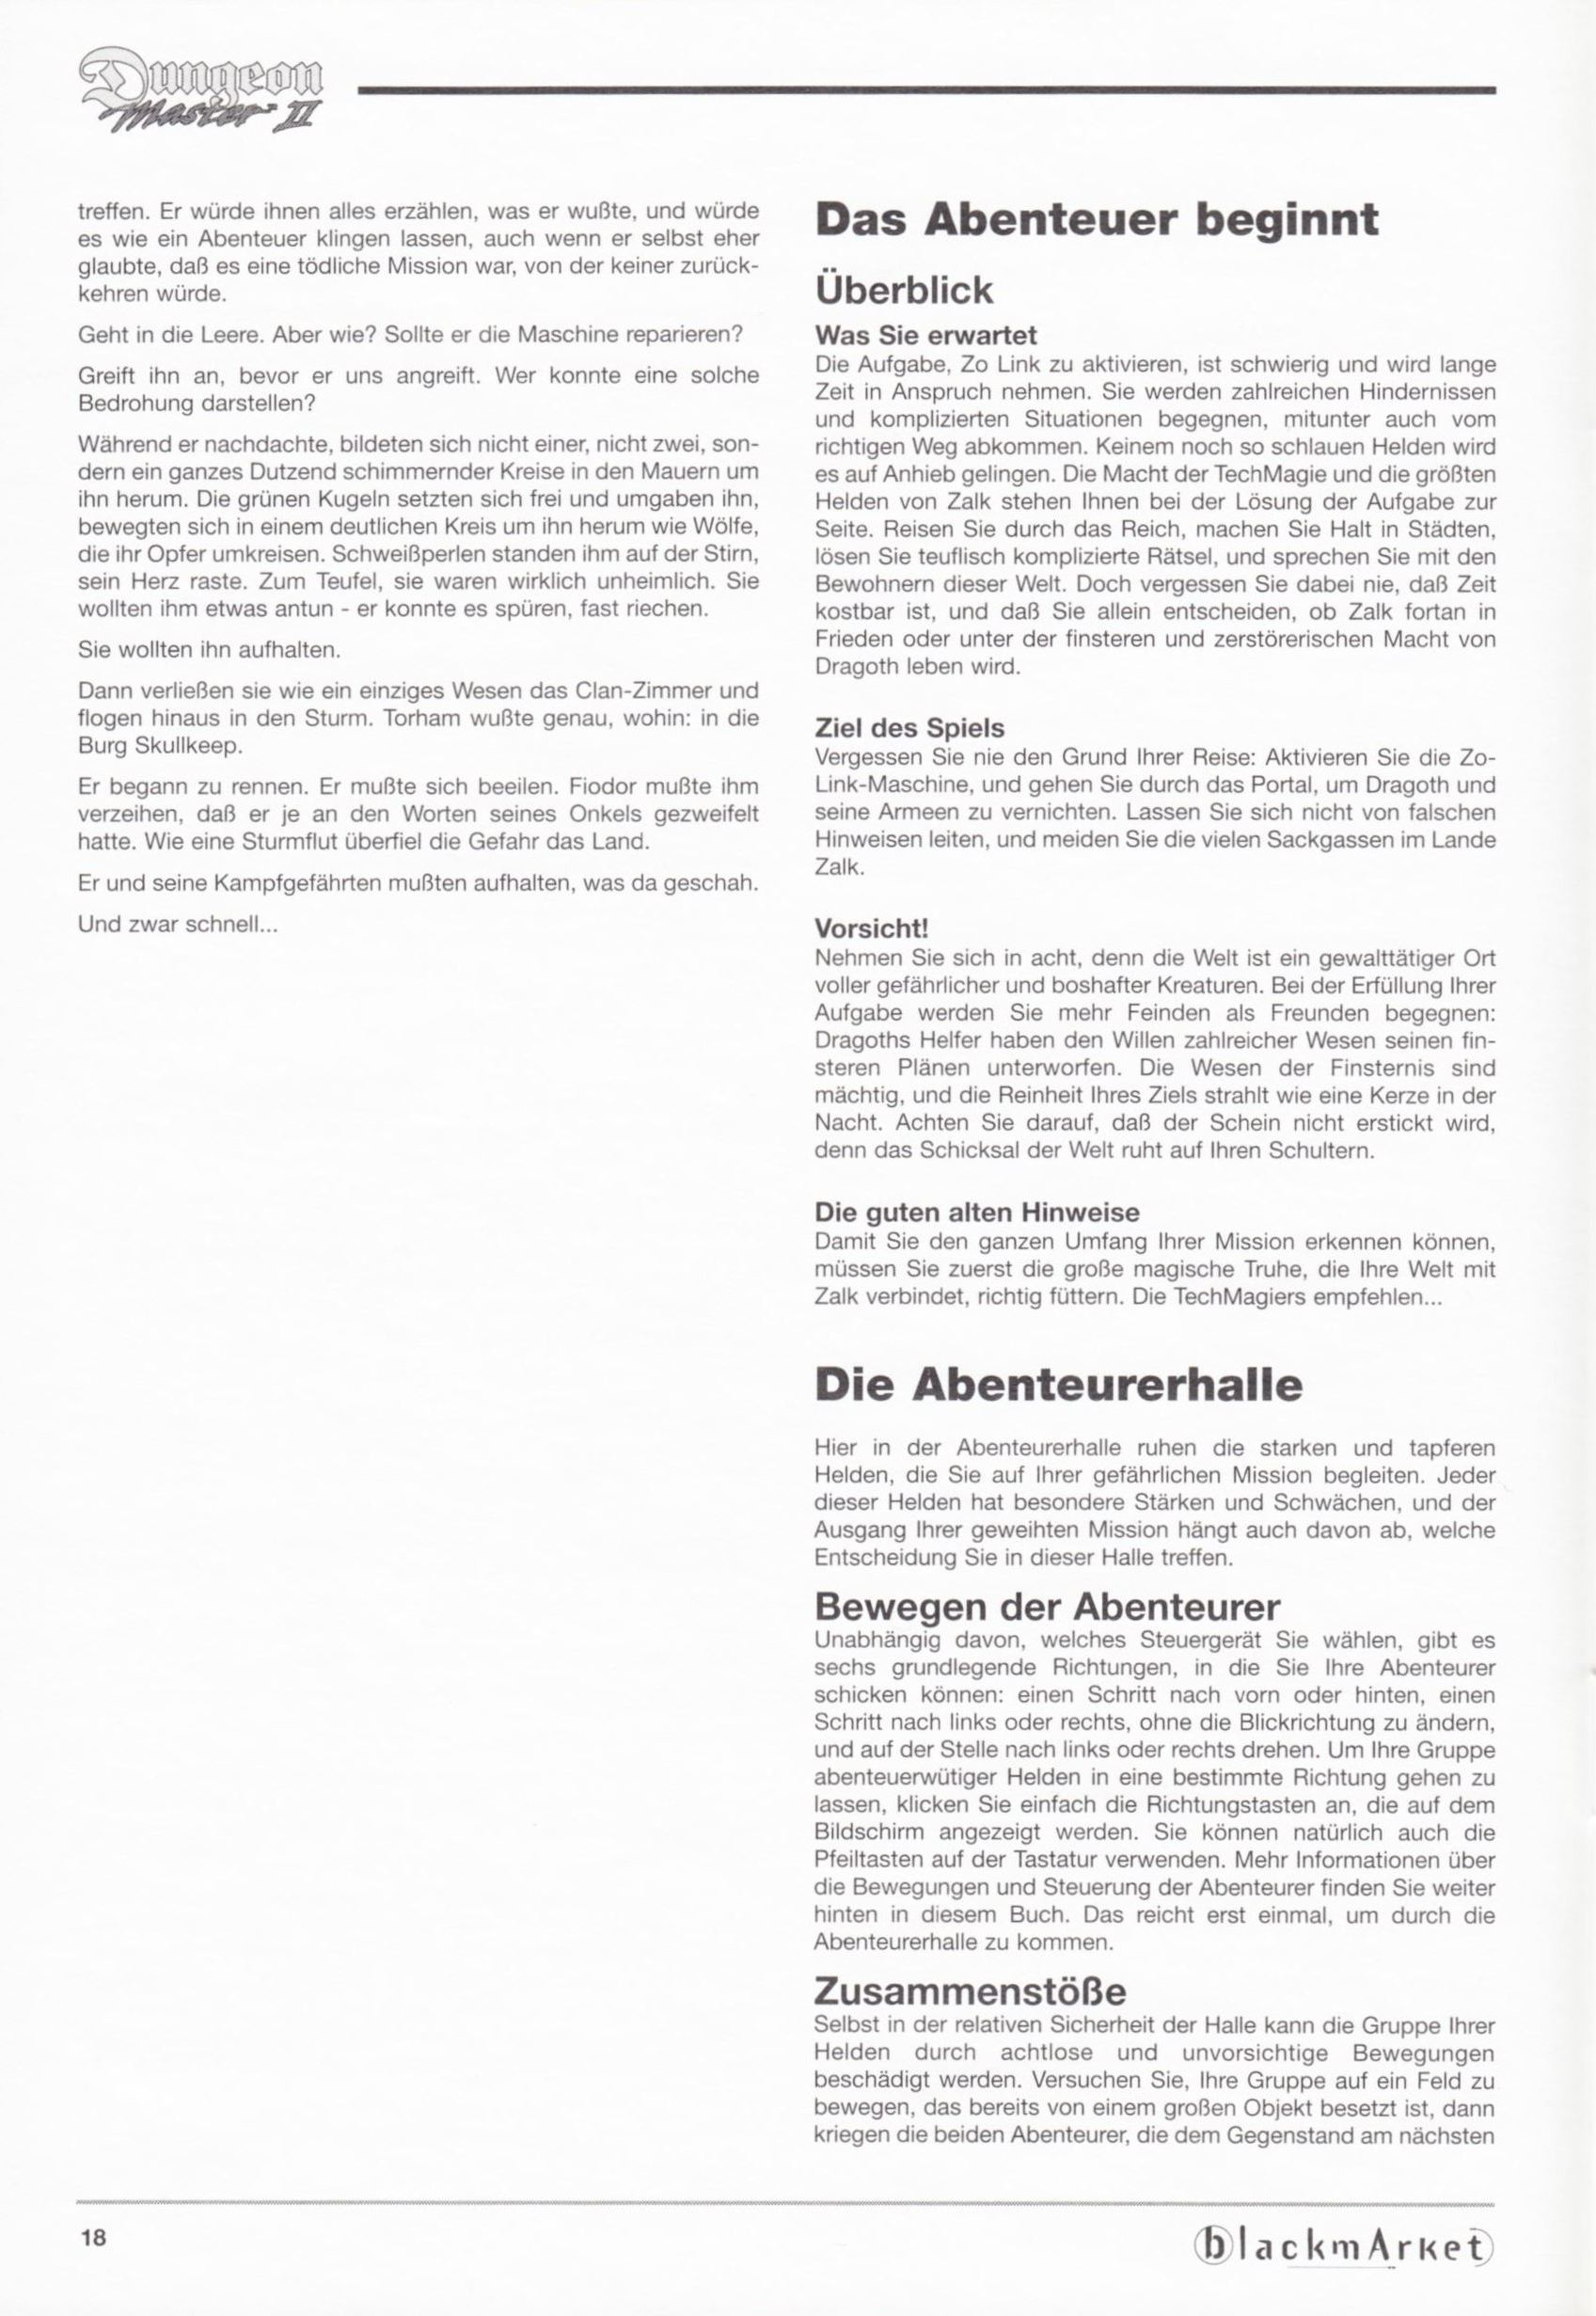 Game - Dungeon Master II - DE - PC - Blackmarket With Manual - Manual - Page 020 - Scan